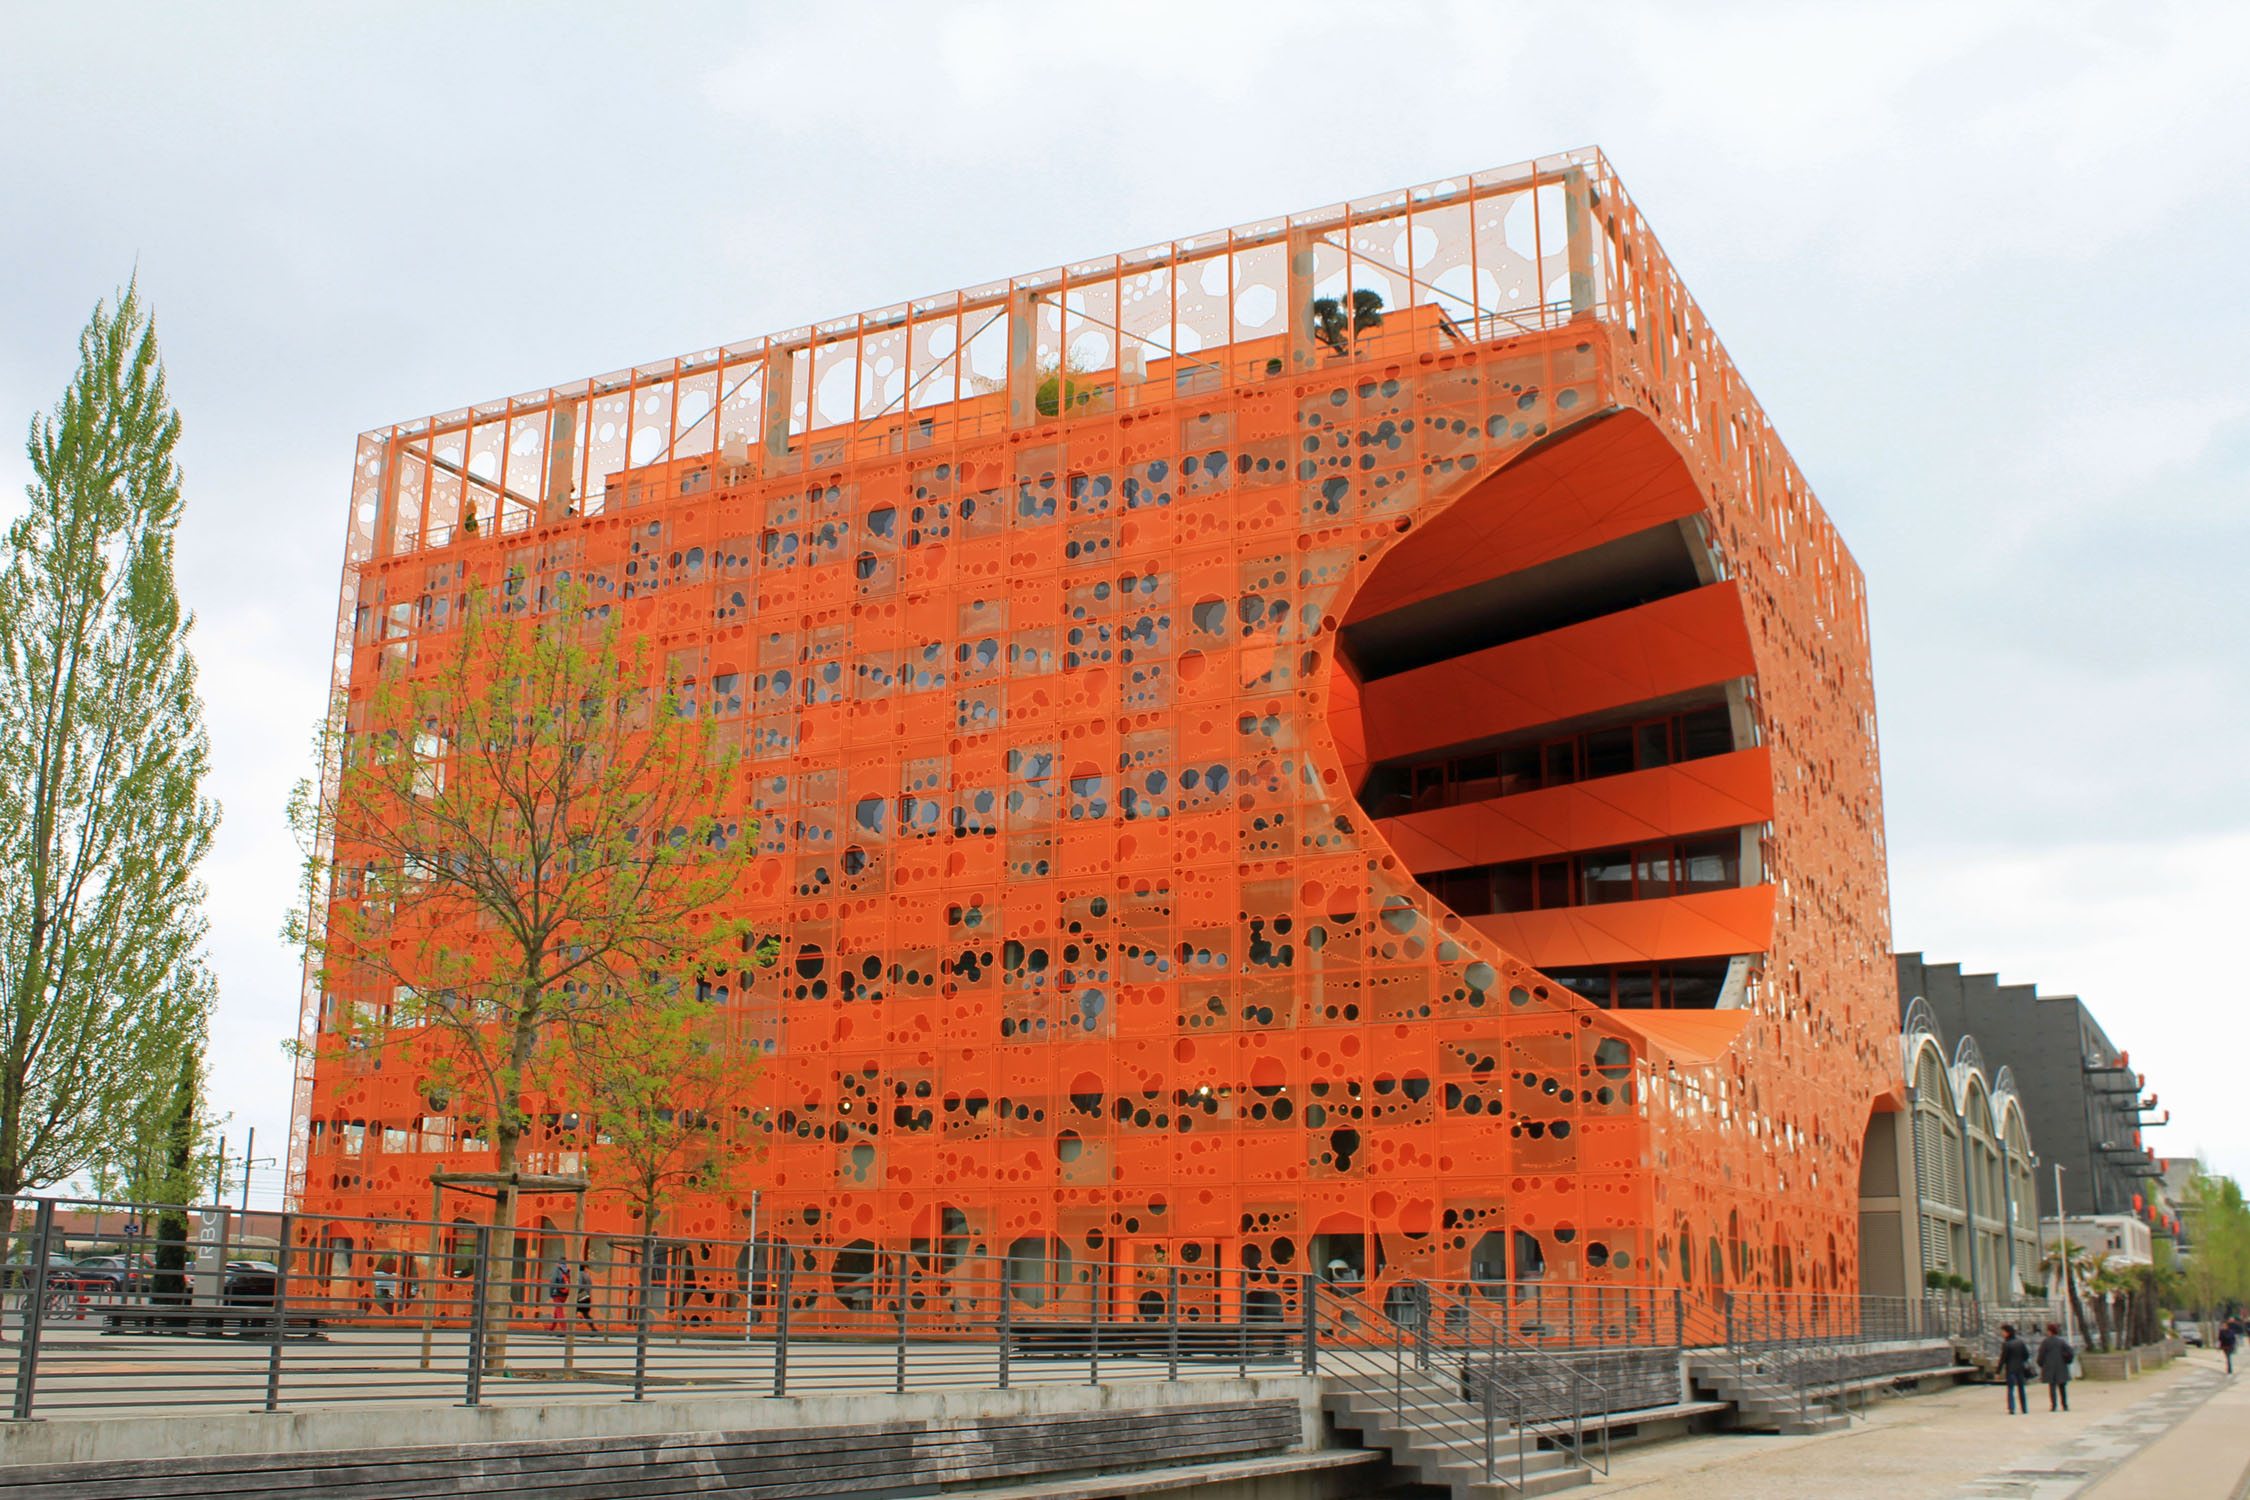 Lyon, barrio Confluence, Cube Orange